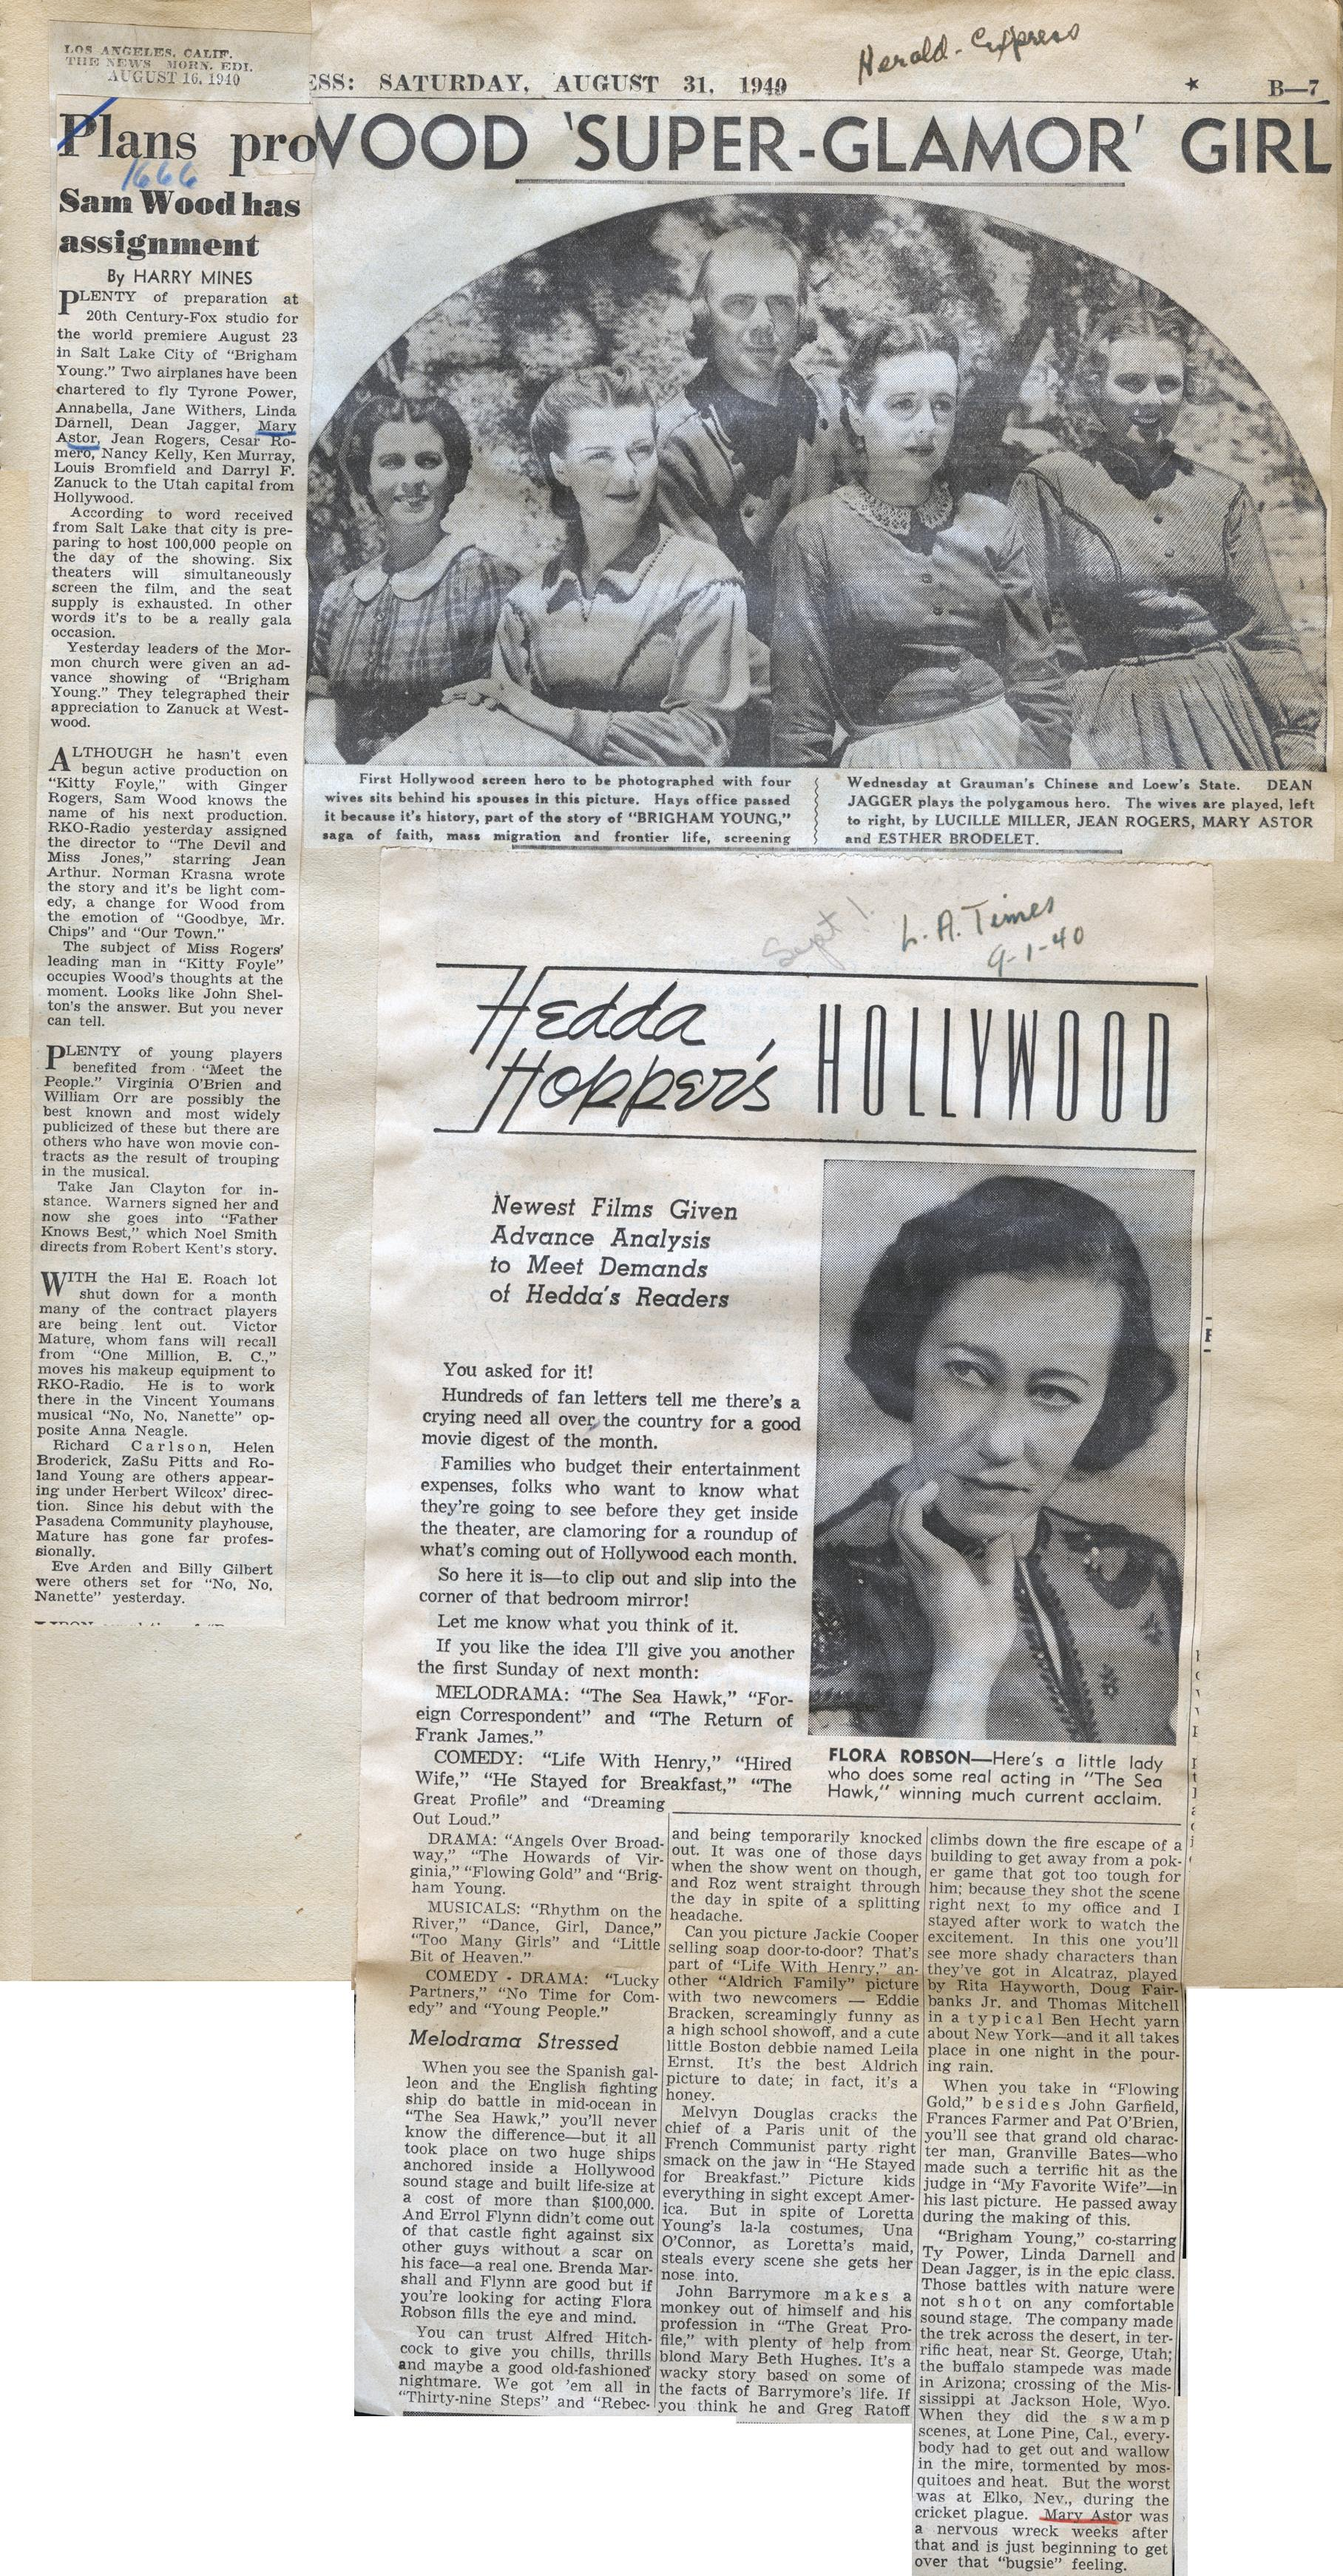 scrapbook (1940) - the mary astor collection